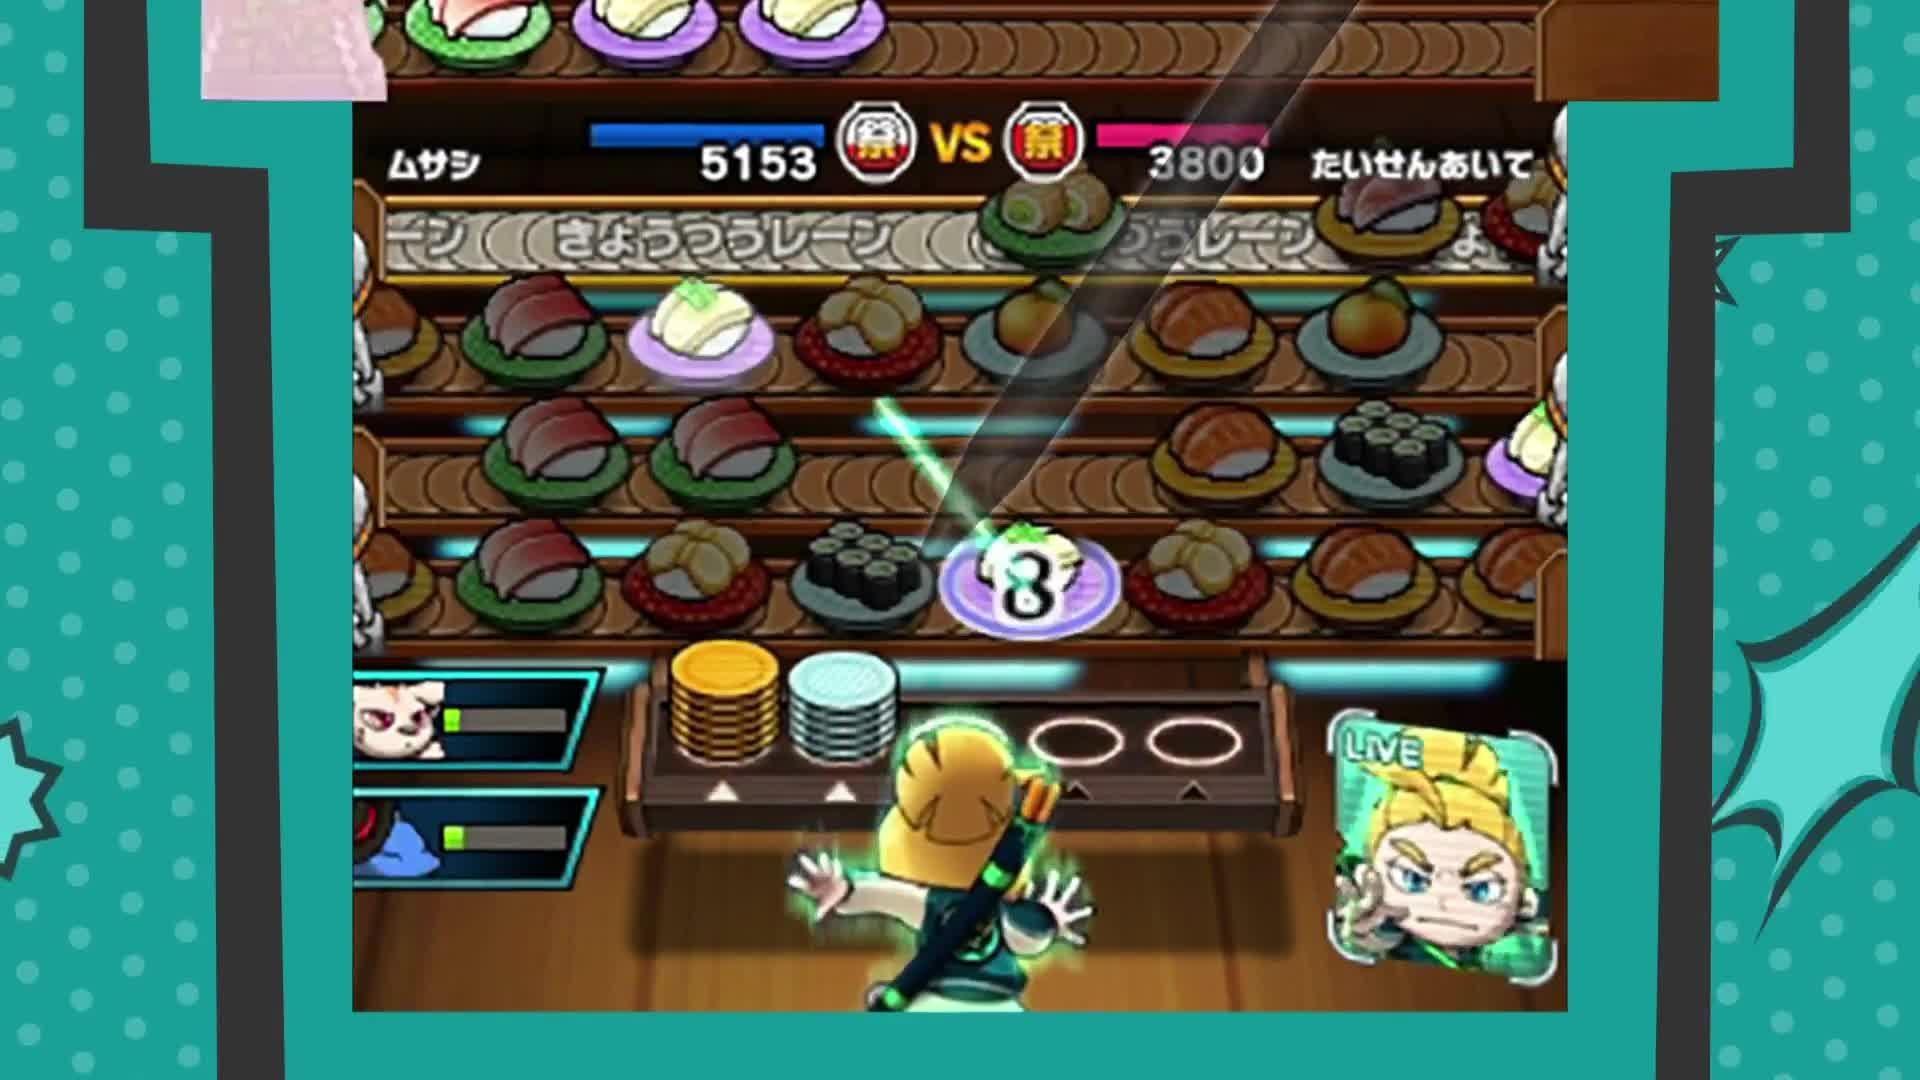 Sushi Striker The Way of Sushido - Official Game Trailer screen capture